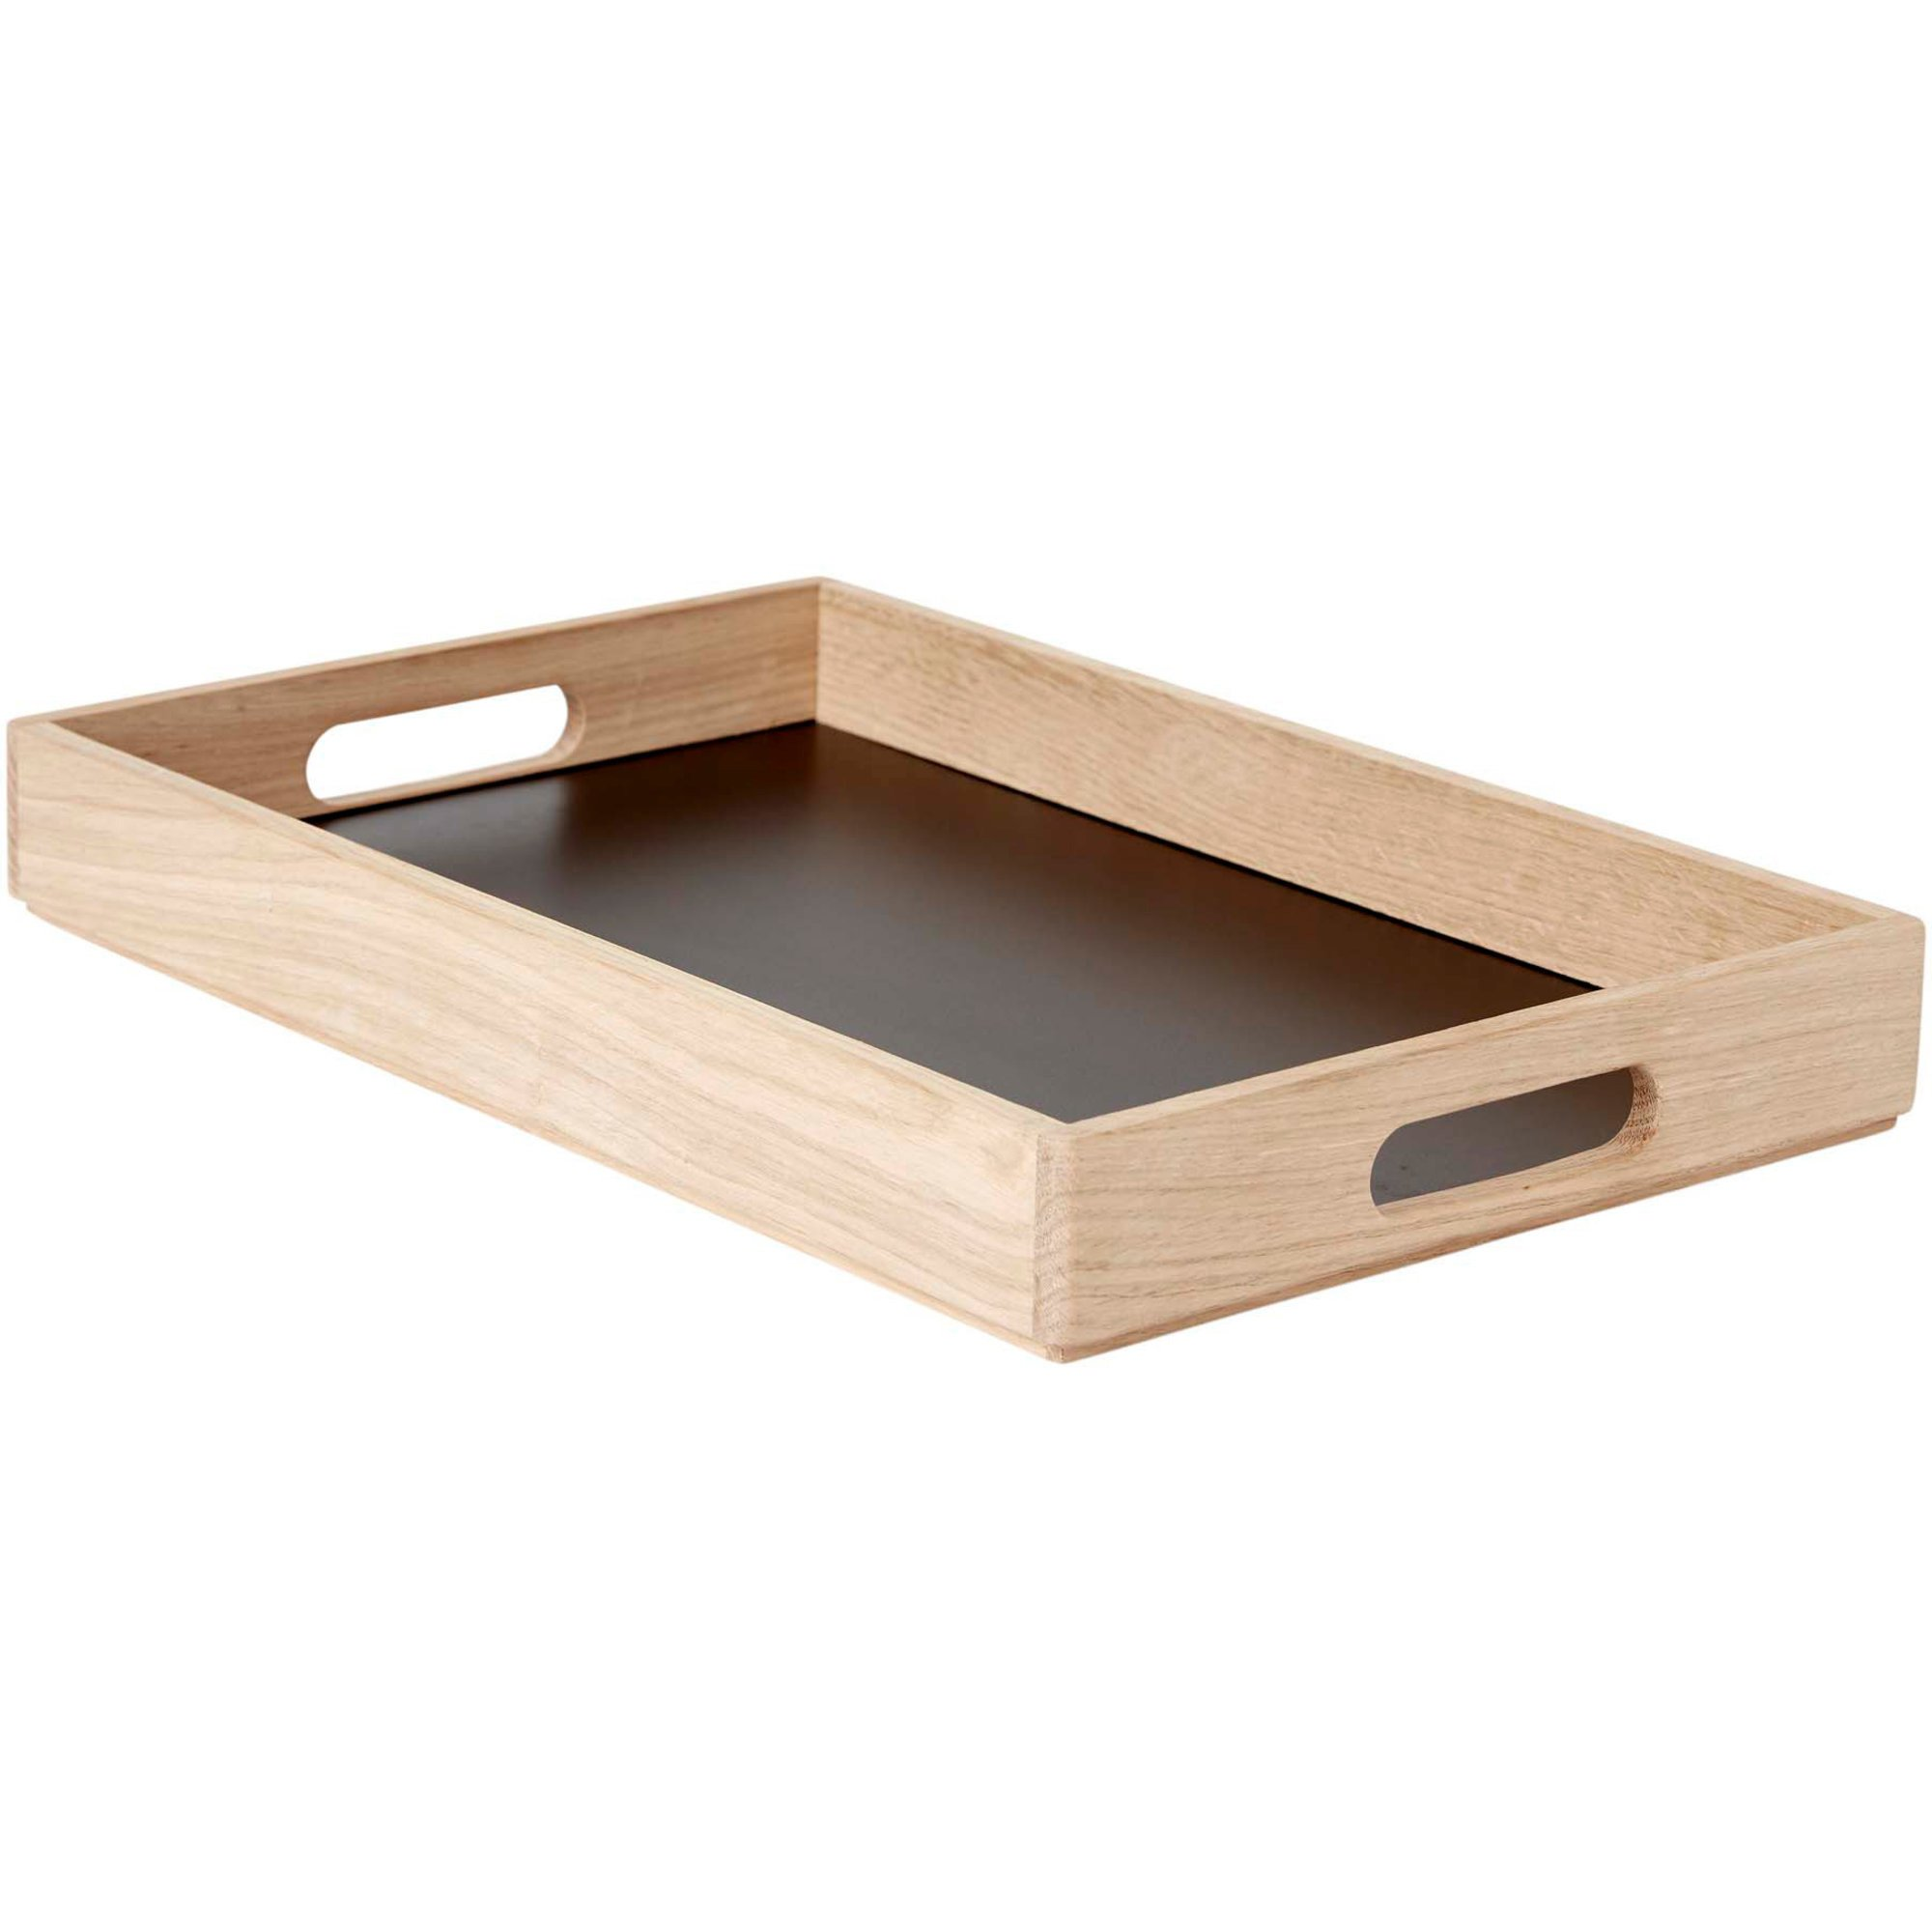 Andersen Furniture Bricka 46 x 30 cm Oak